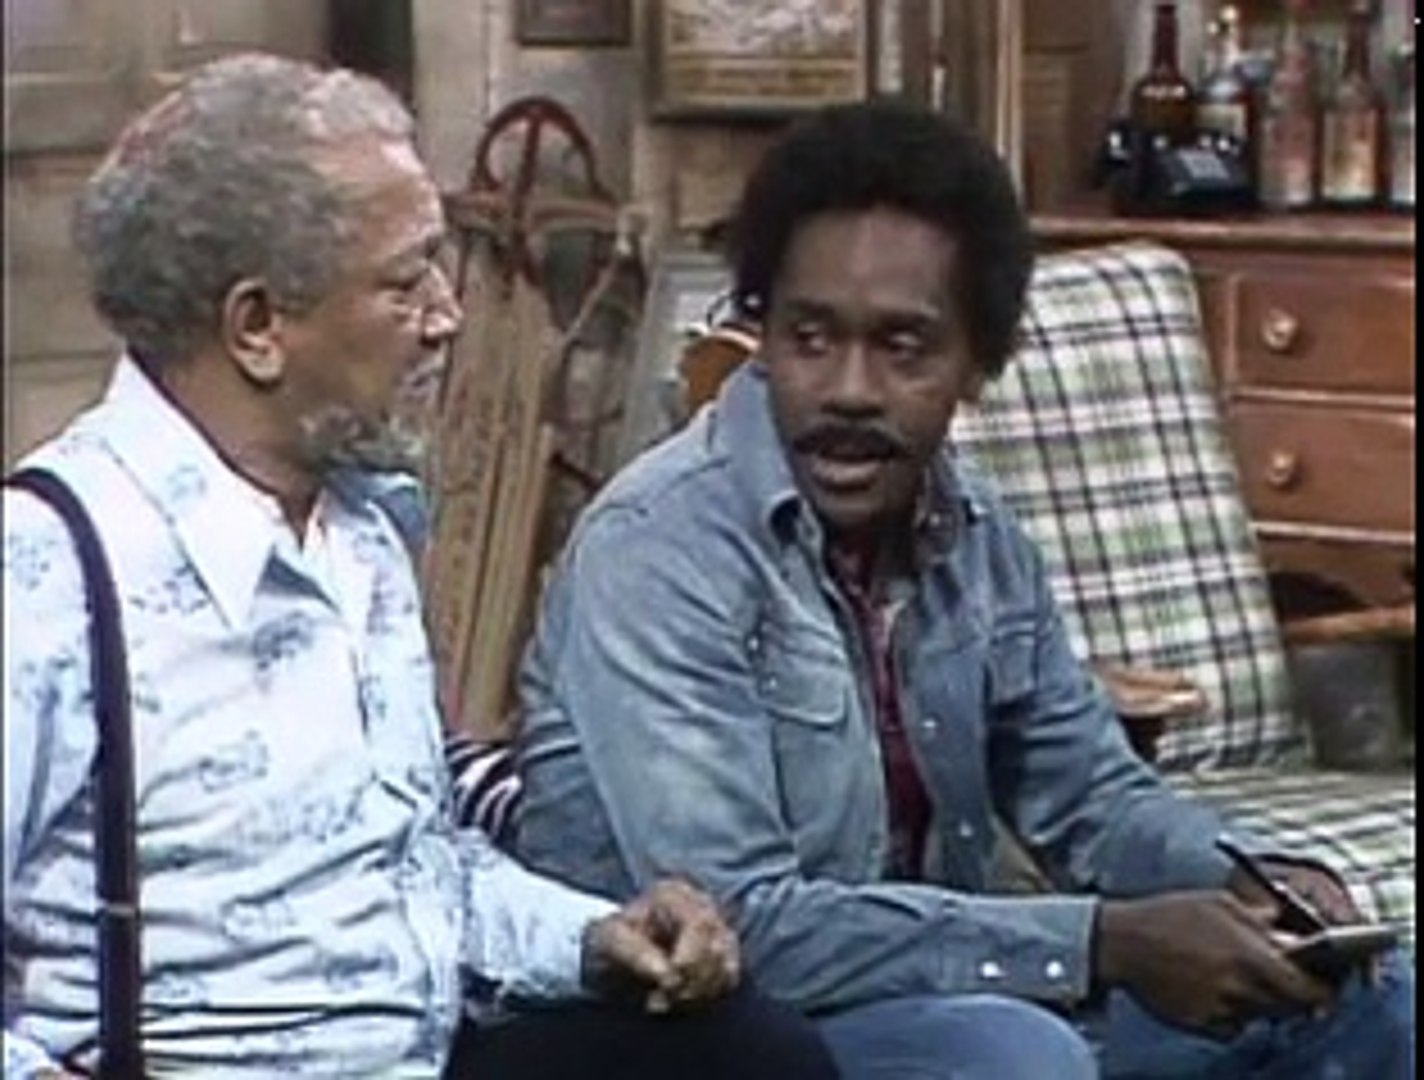 SANFORD AND SON S6 E02